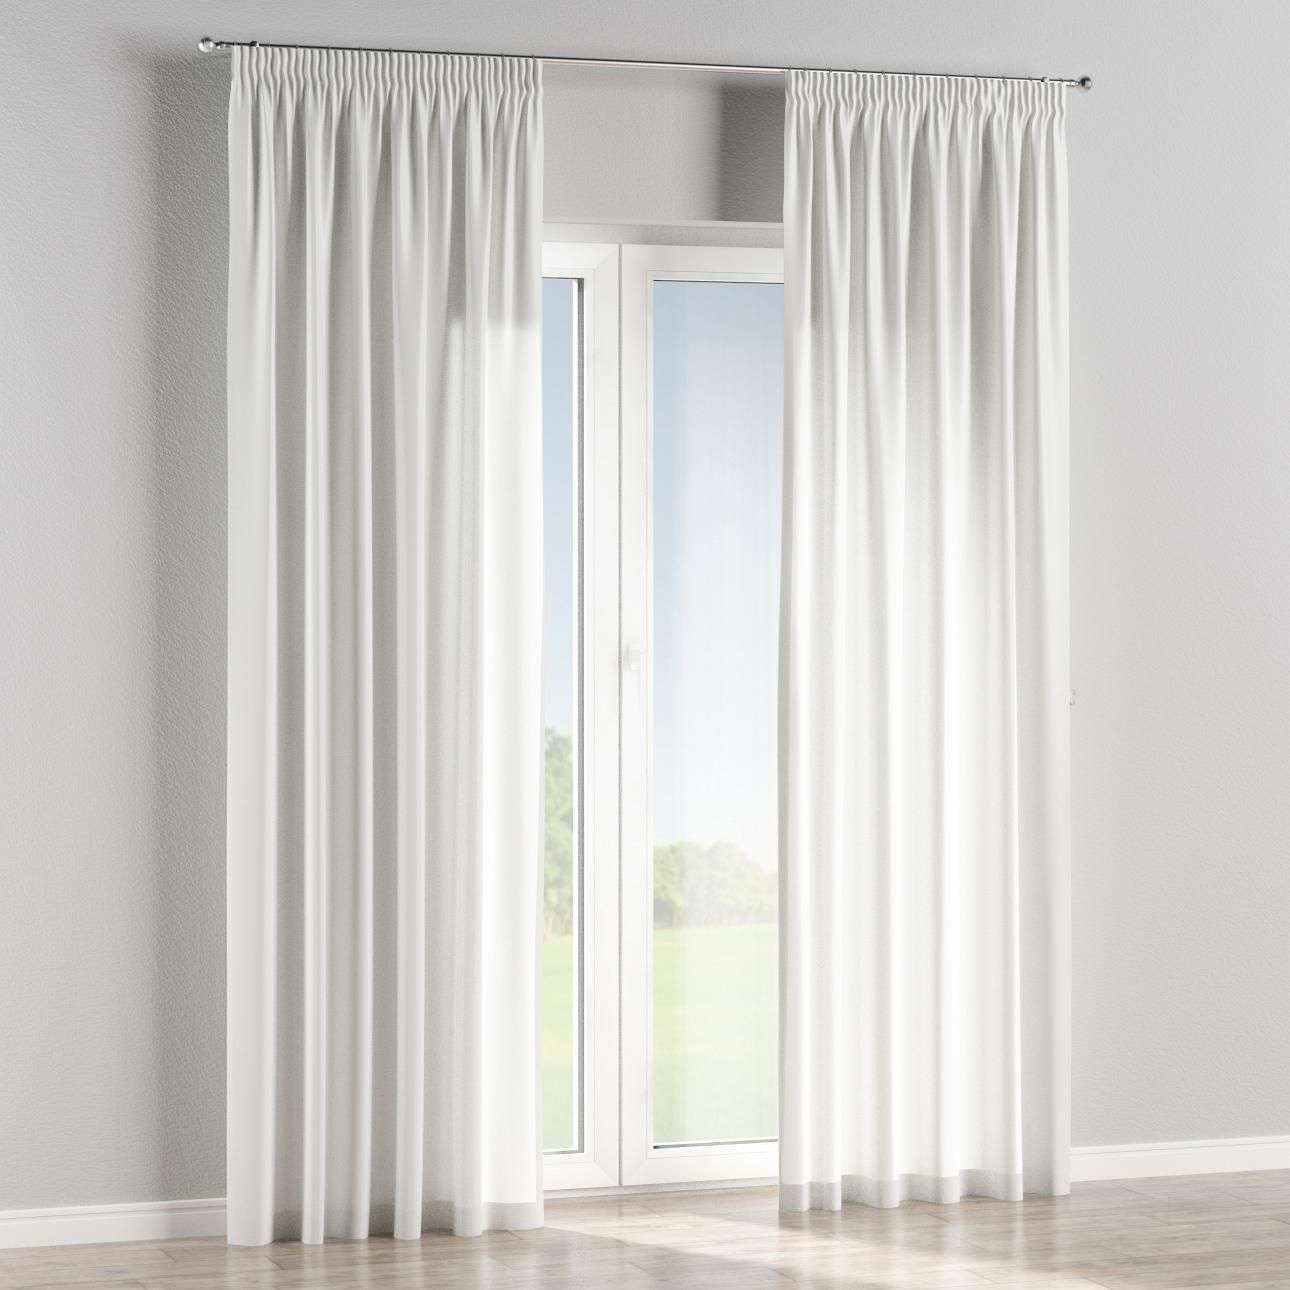 Pencil pleat lined curtains in collection Bristol, fabric: 125-09